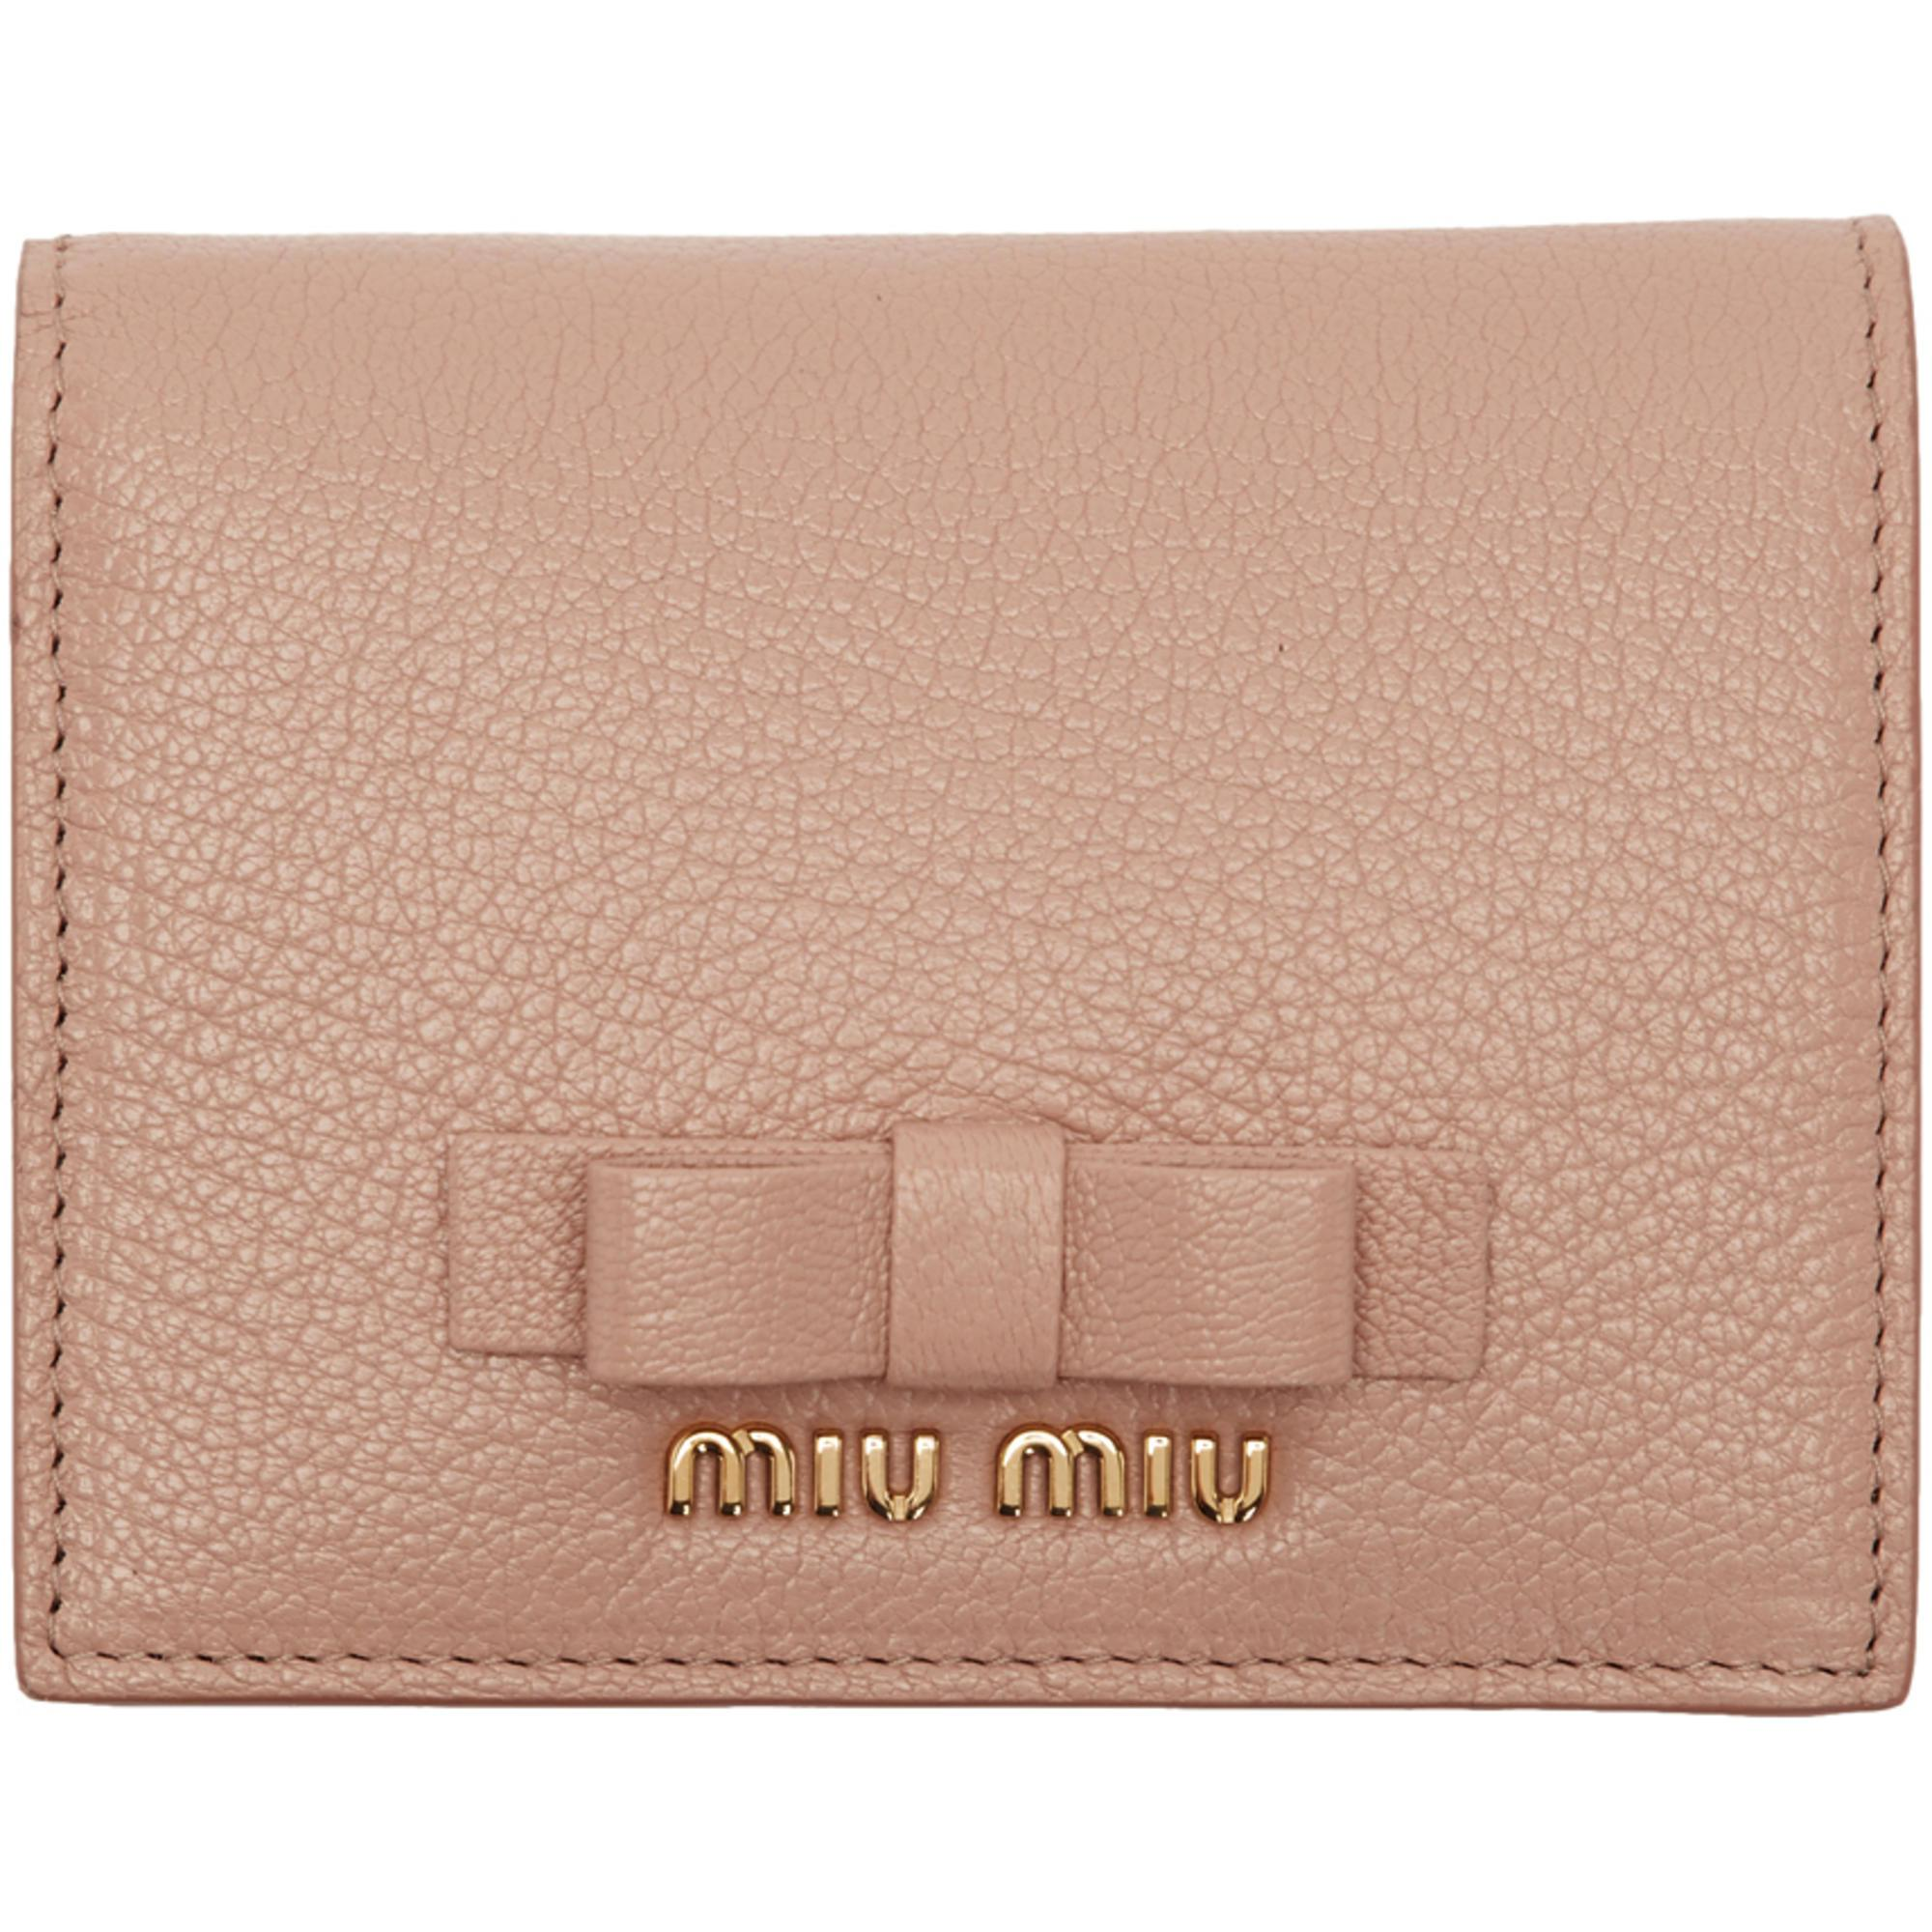 d002d001437e Miu Miu Pink Bow French Wallet in Pink - Lyst